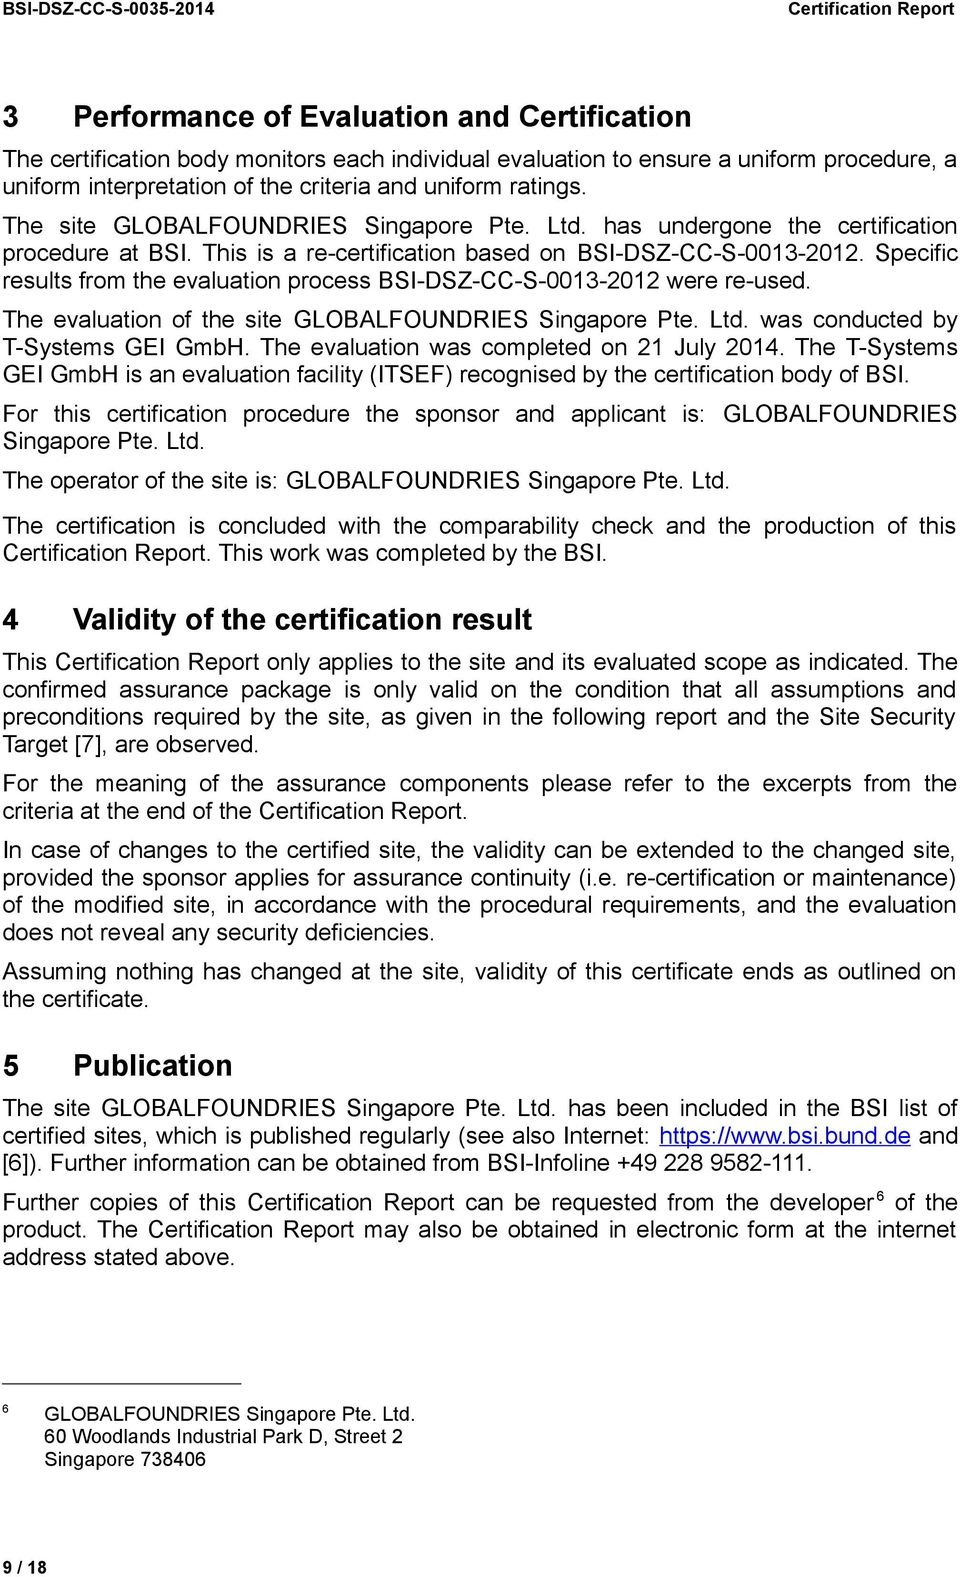 This is a re-certification based on BSI-DSZ-CC-S-0013-2012. Specific results from the evaluation process BSI-DSZ-CC-S-0013-2012 were re-used. The evaluation of the site GLOBALFOUNDRIES Singapore Pte.